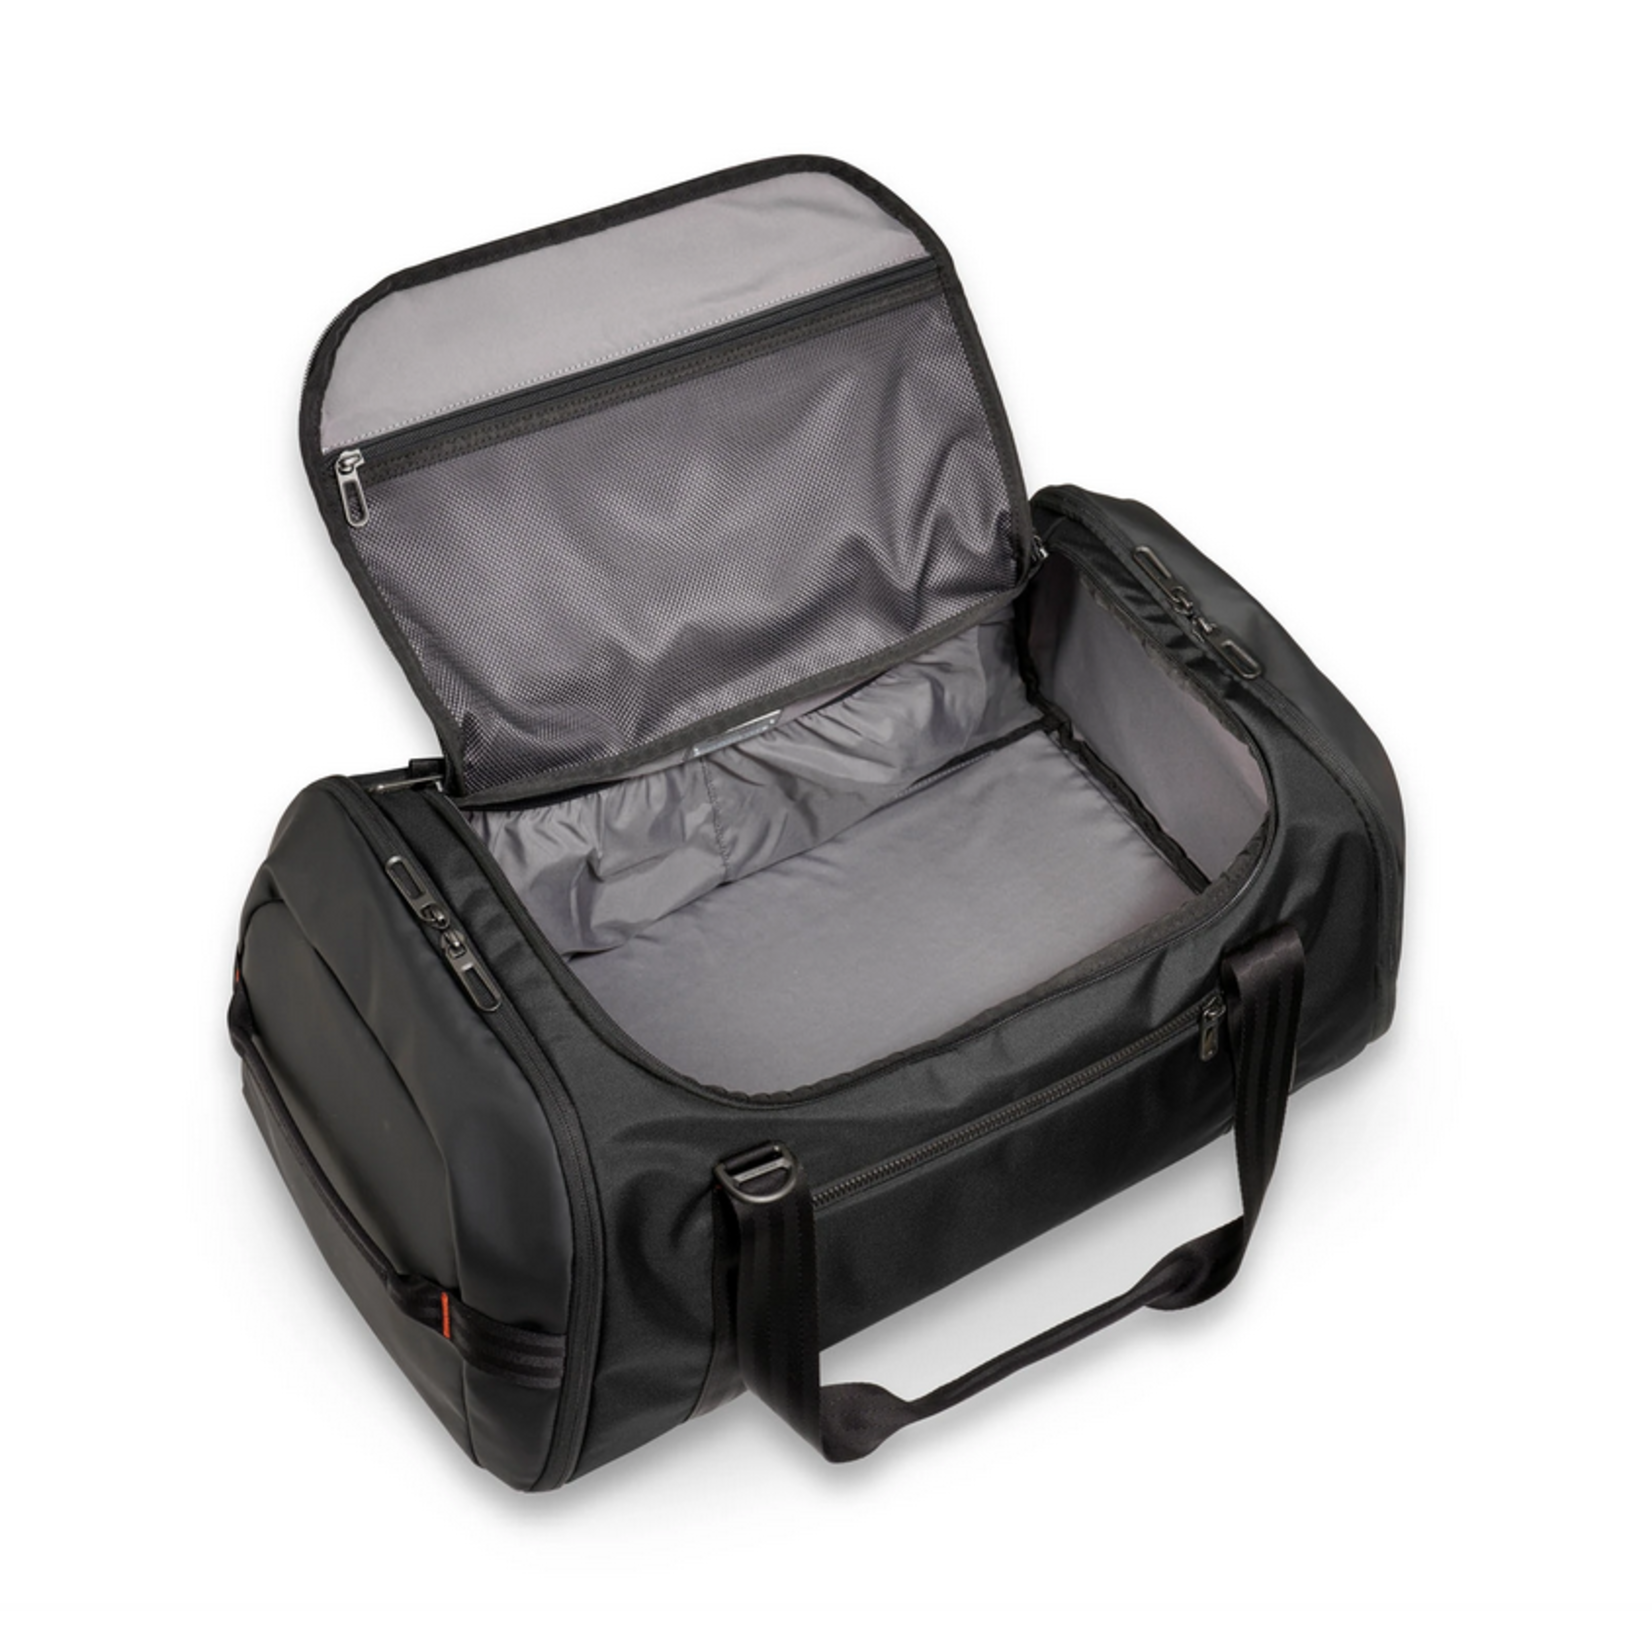 BRIGGS & RILEY ZDX LARGE TRAVEL DUFFLE